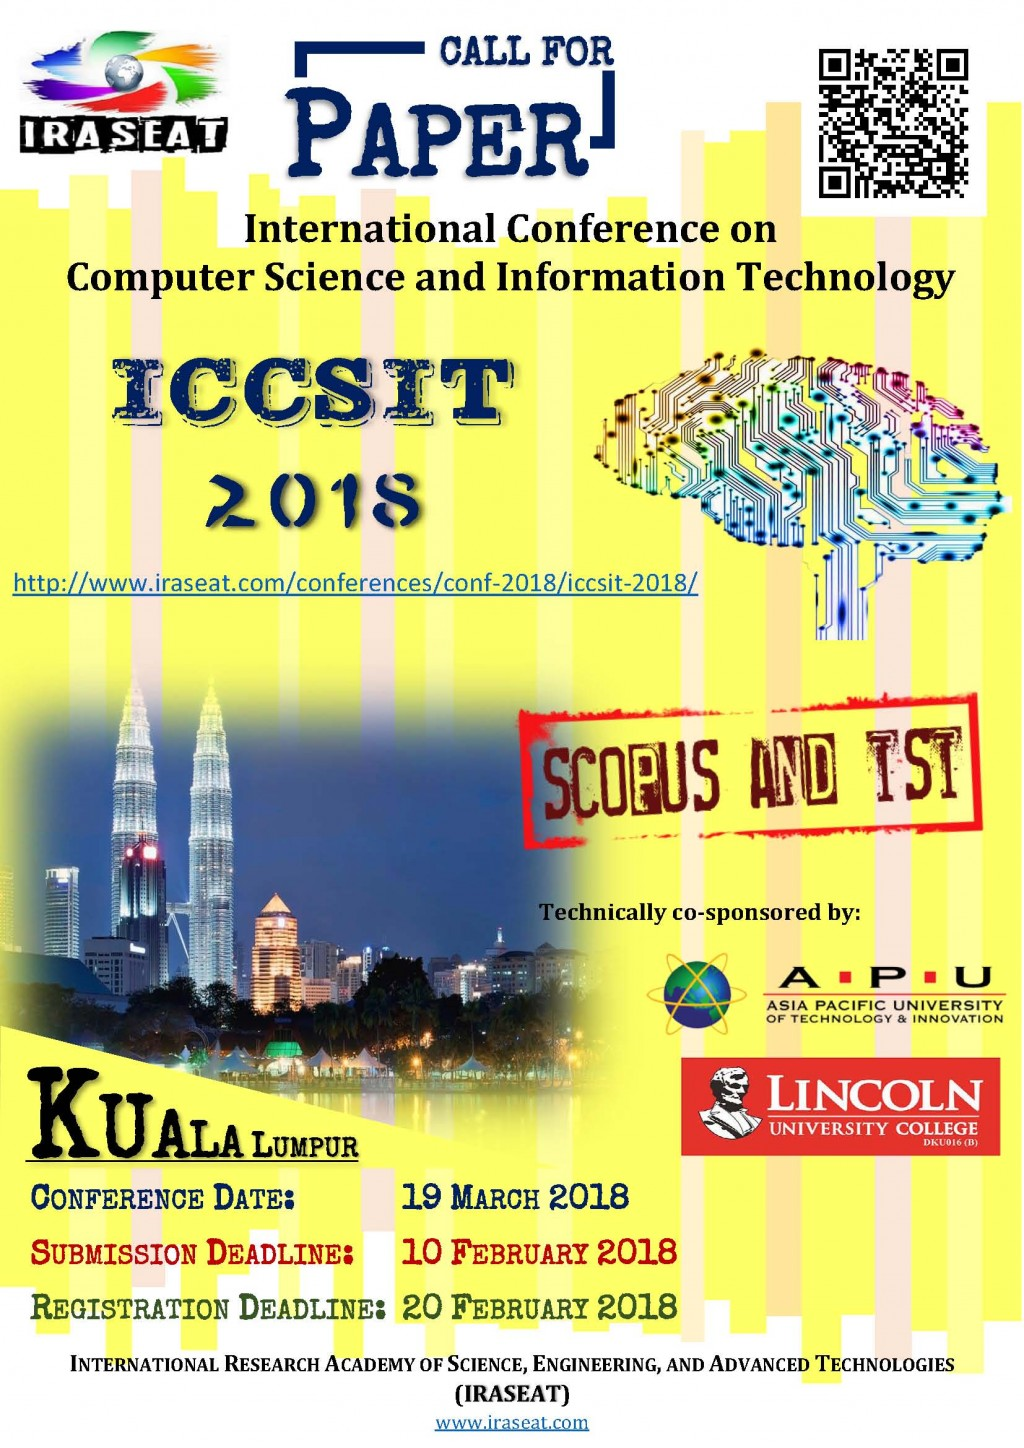 018 Latest Researchs In Computer Science Cfp Iccsit Dreaded Research Papers 2018 Paper Large